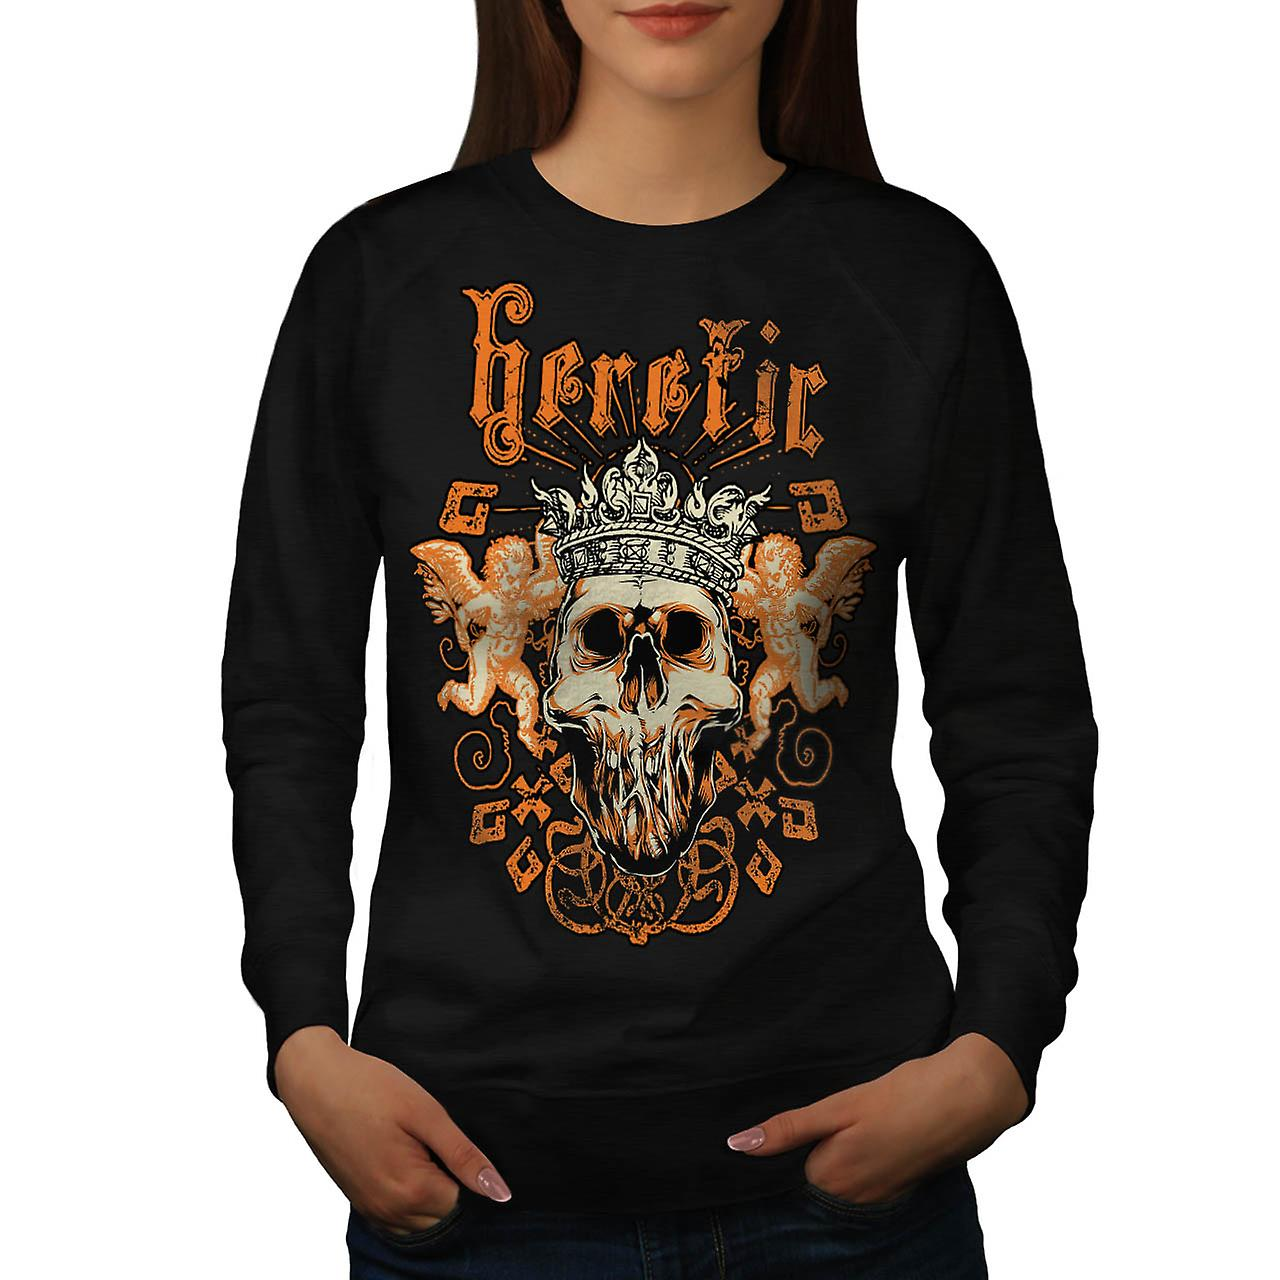 Heretic Monster King Skull Rage Women Black Sweatshirt | Wellcoda